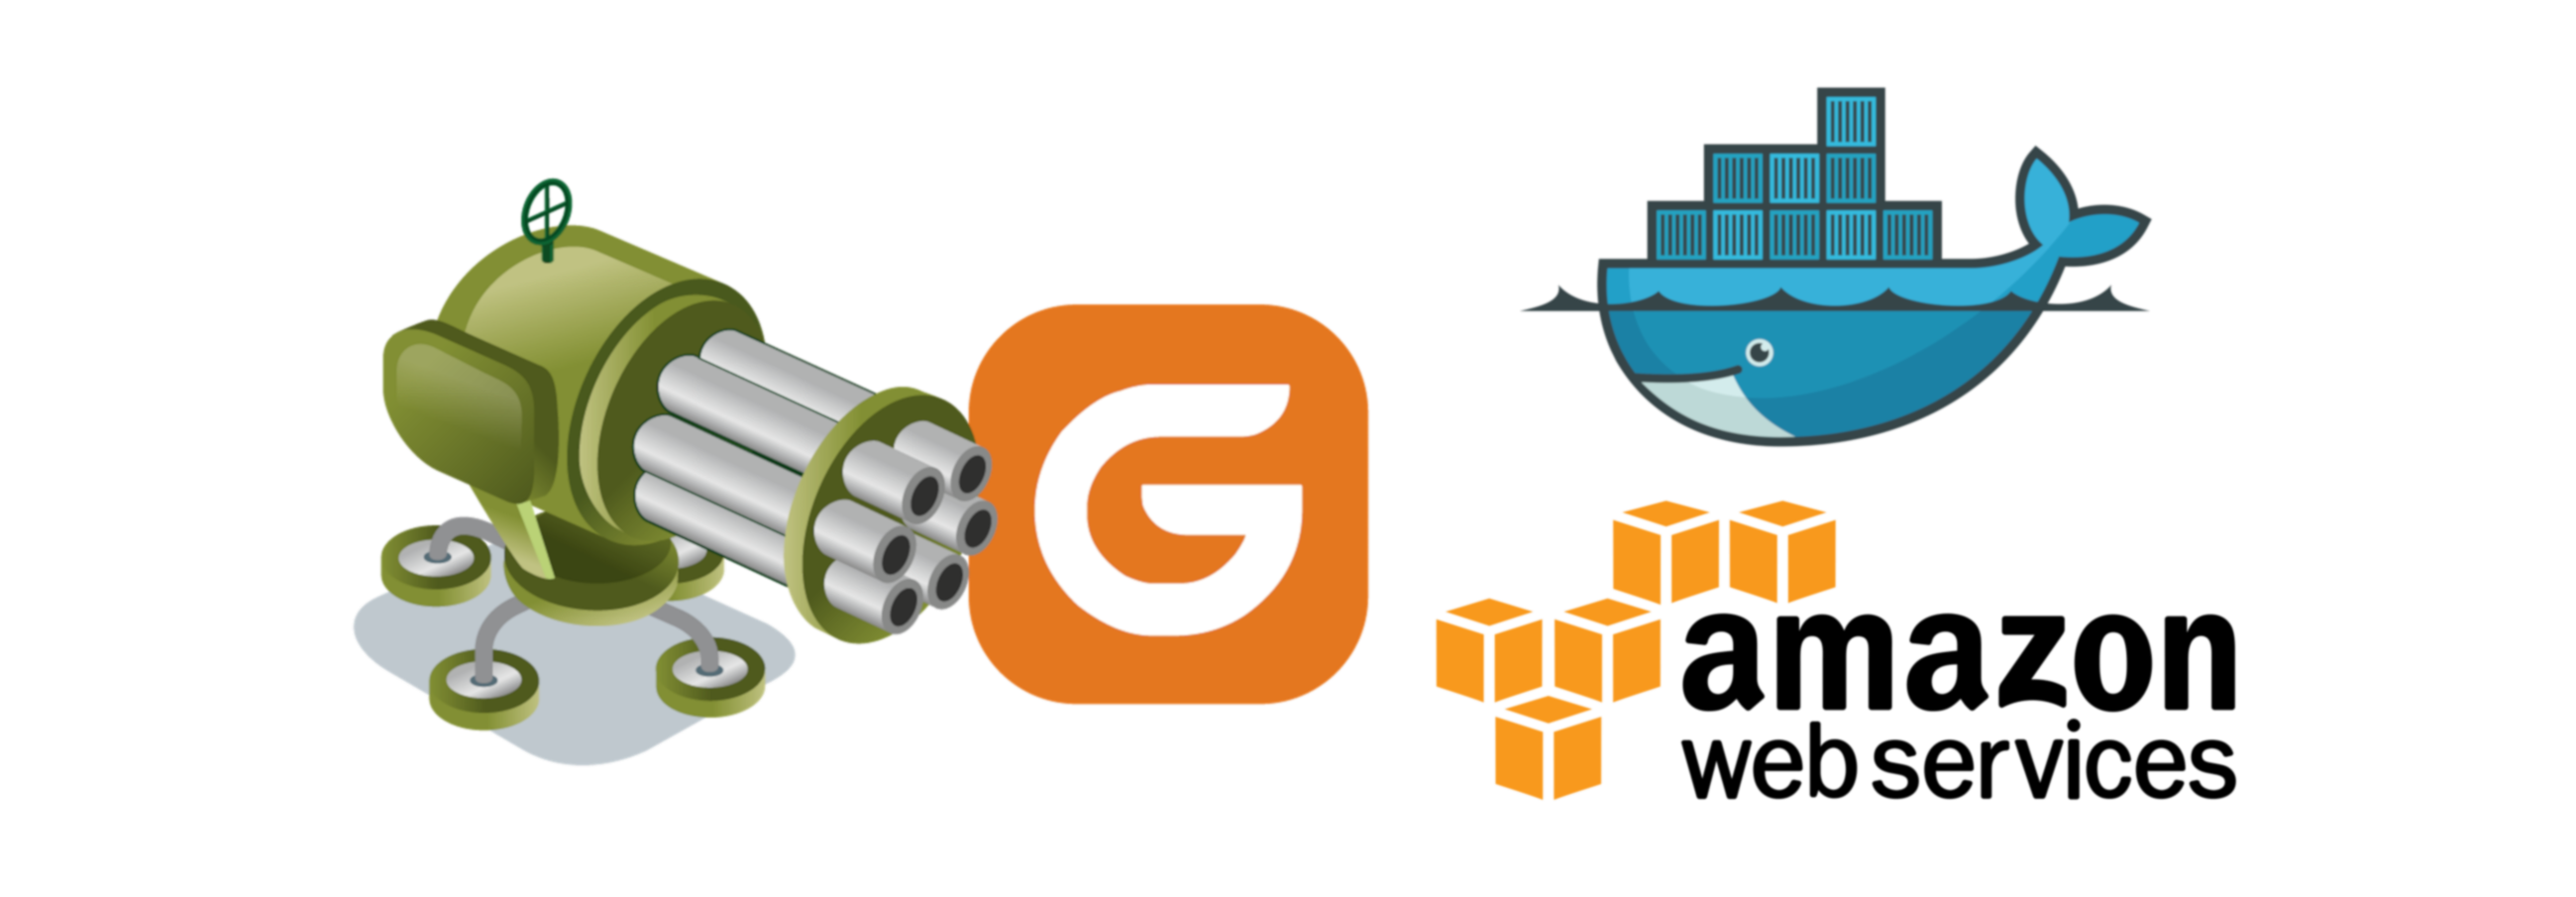 Distributed load testing with Gatling using Docker and AWS